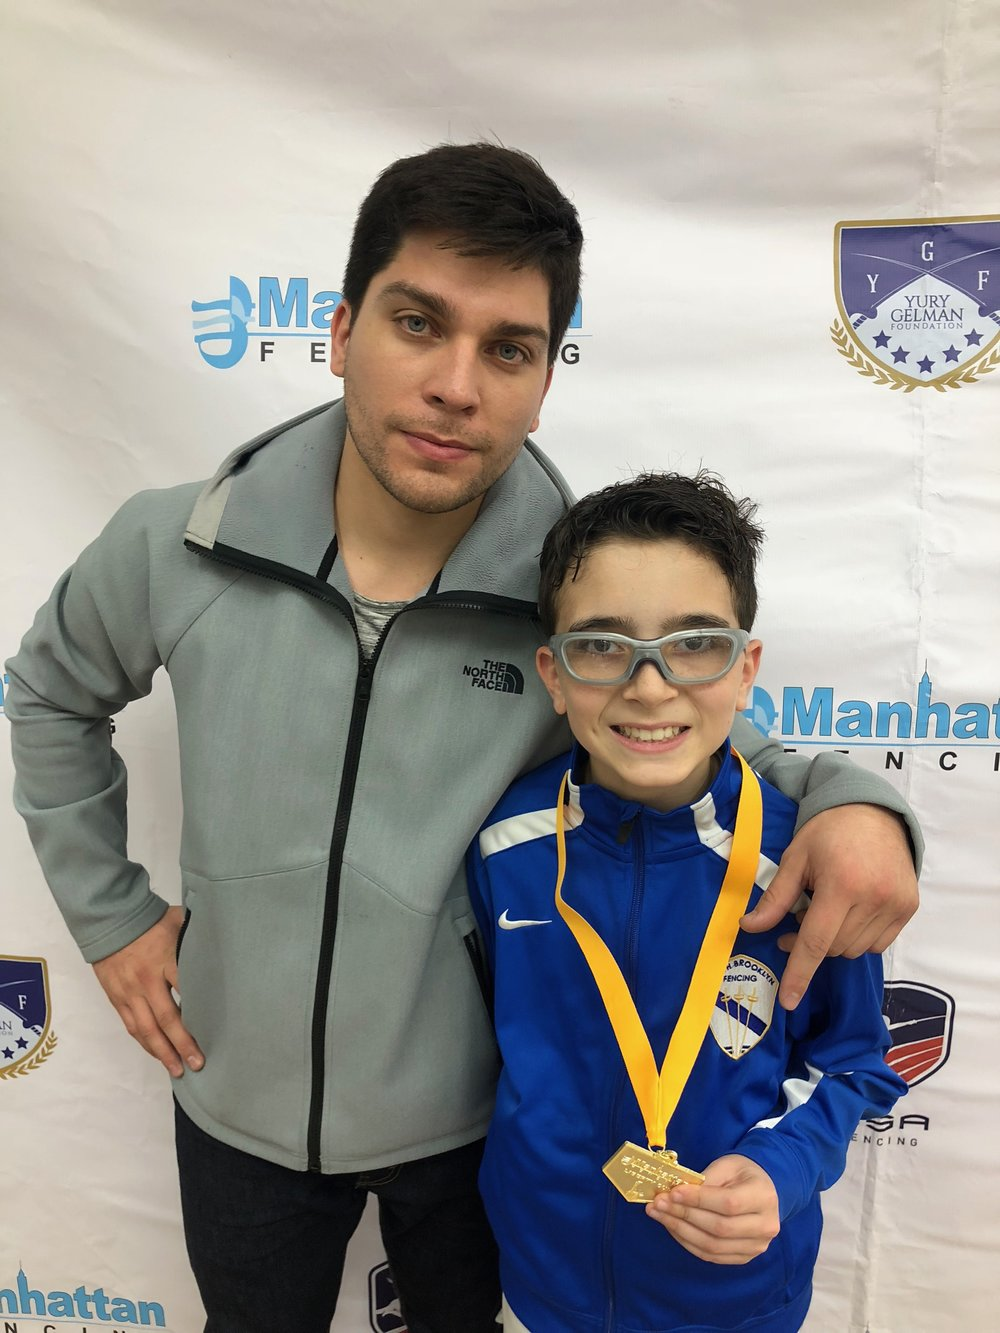 Manhattan Fencing Center Youth  Sebastian Garcia 1st place men's December 2nd 2018